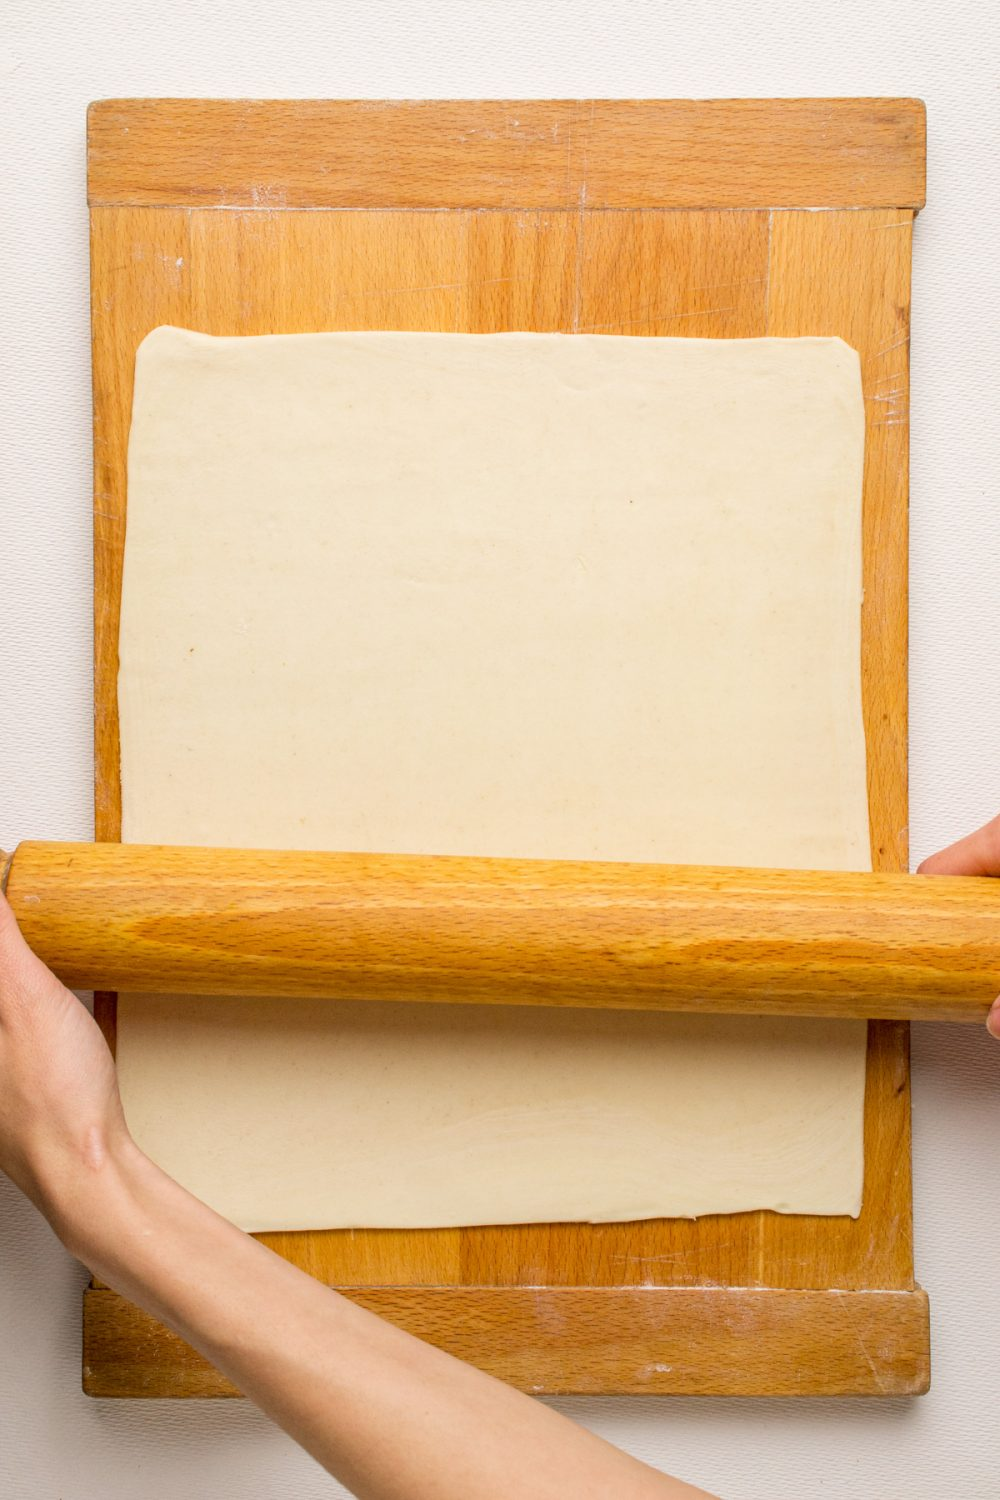 A wooden rolling pin rolls out a rectangle of puff pastry.